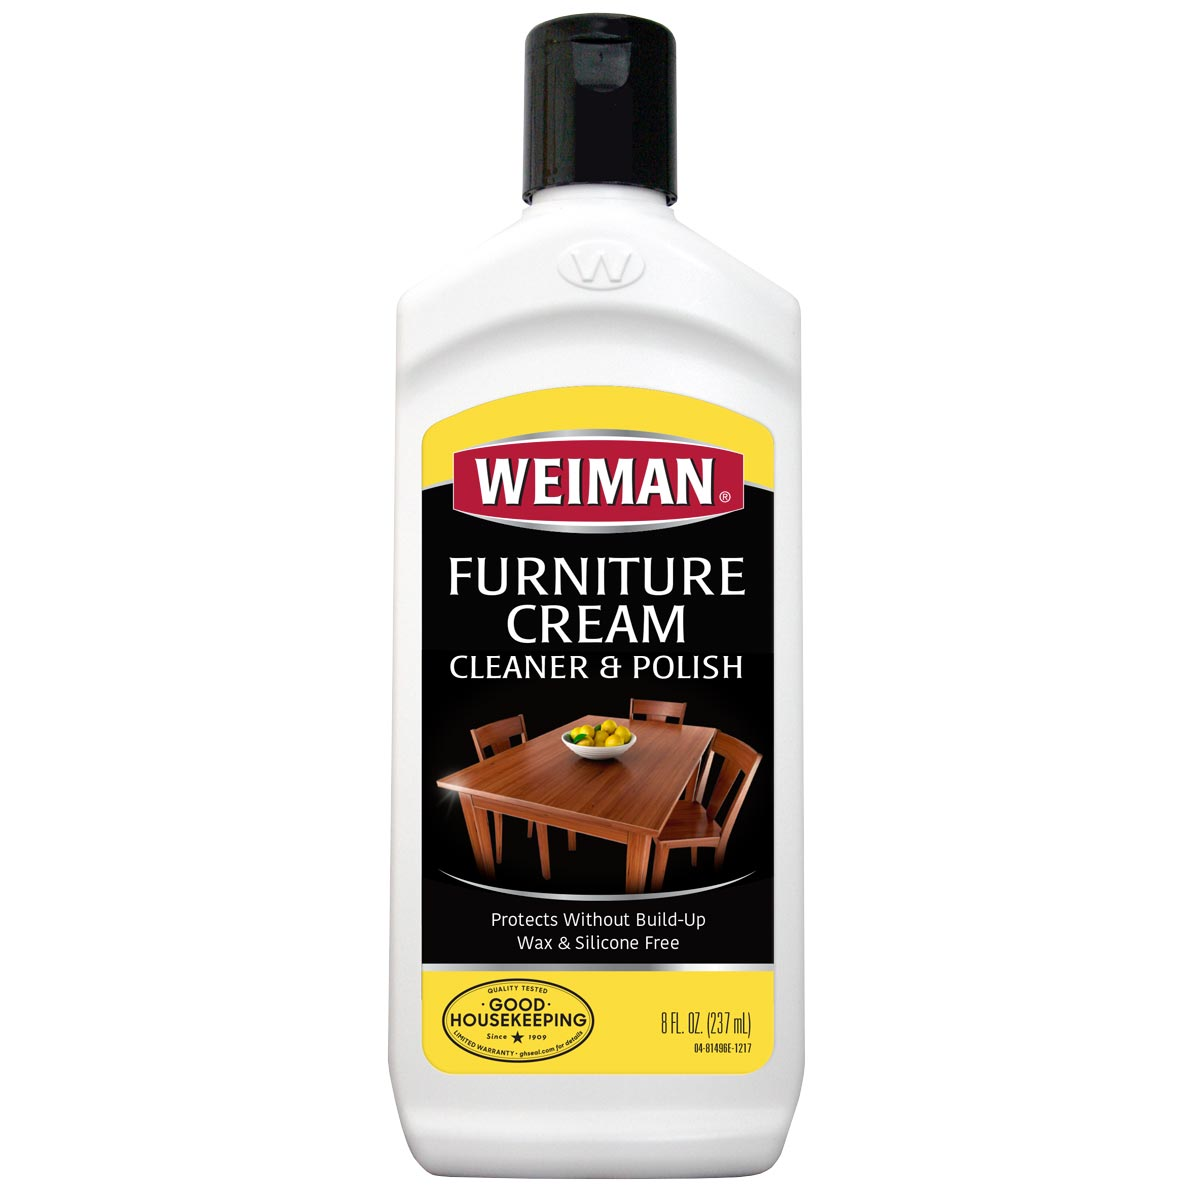 Weiman Furniture Cream Cleaner & Polish